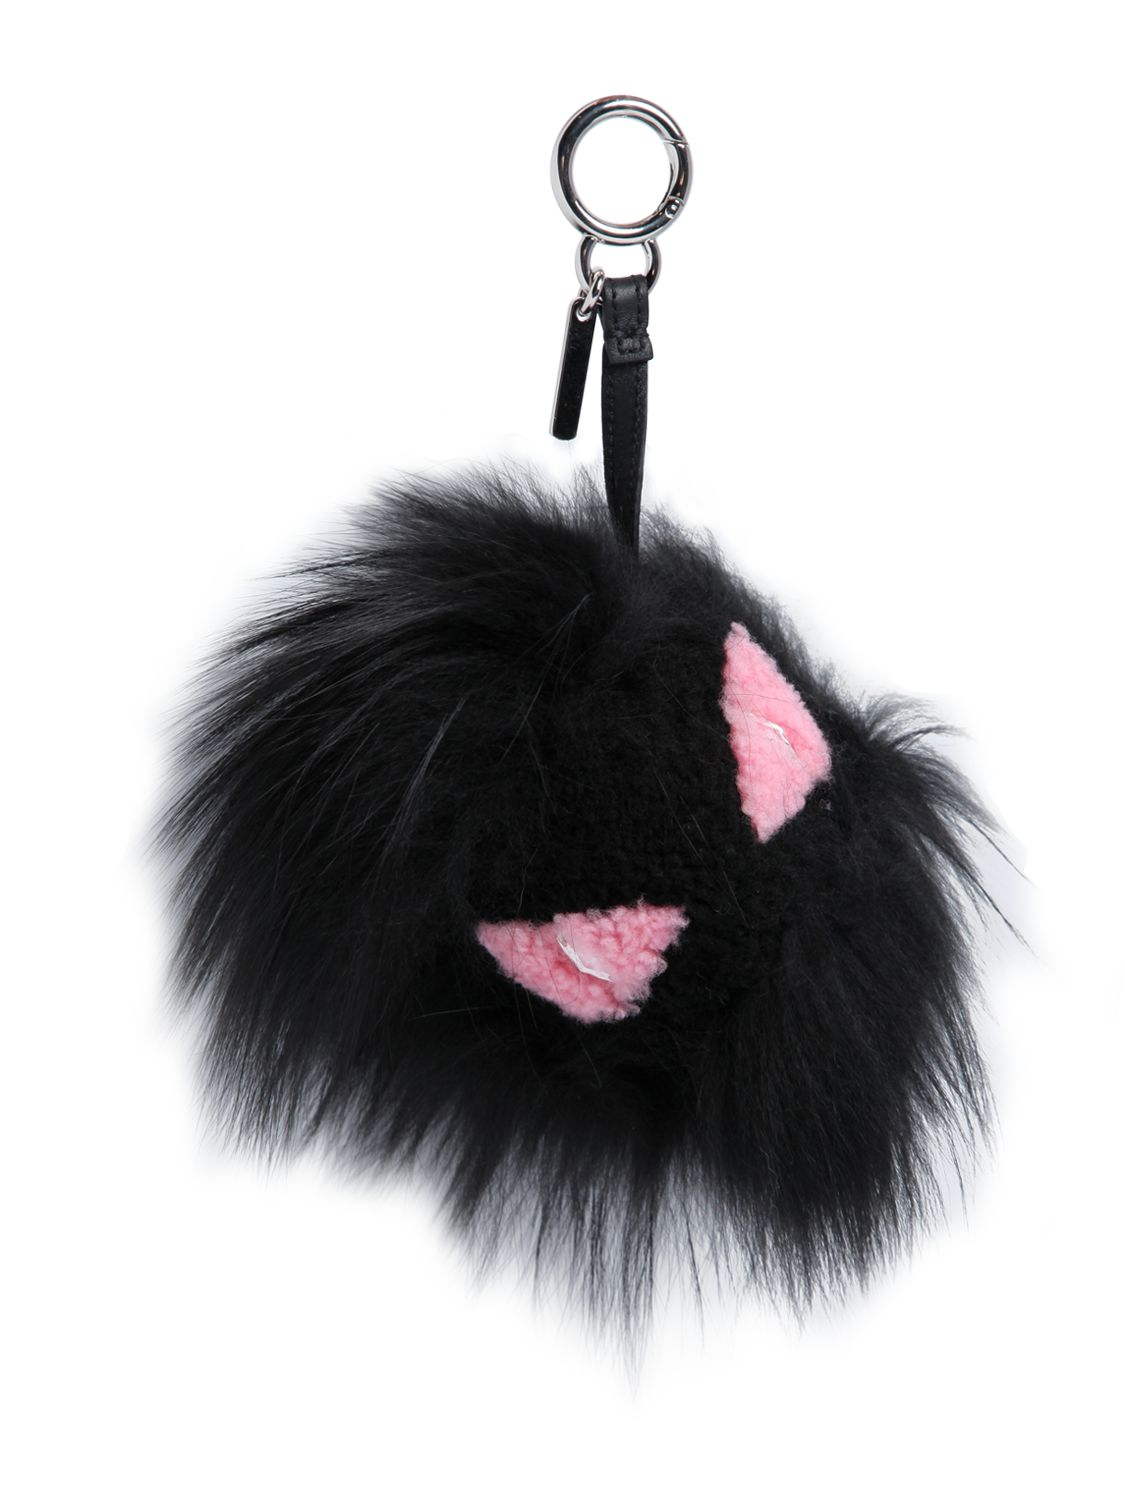 Fendi Fur Purse | Fendi Fur Monster | Fendi Fox Fur Keychain